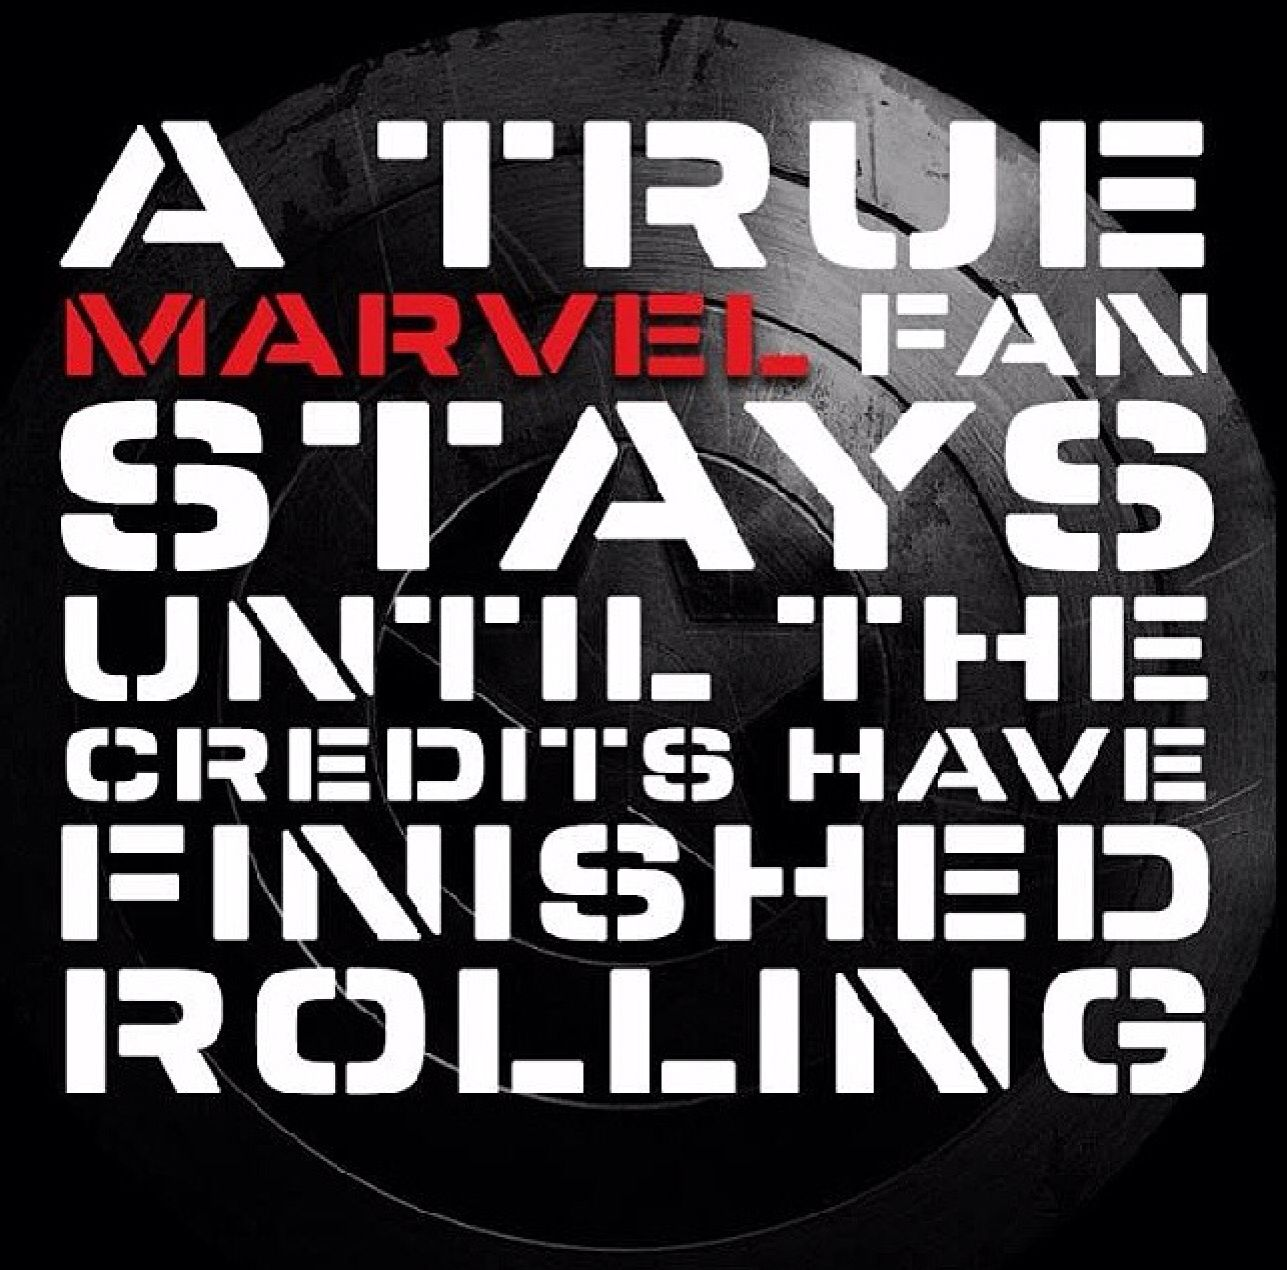 I M With Ya Marvel Till The End Of The Line Marvel Heroes